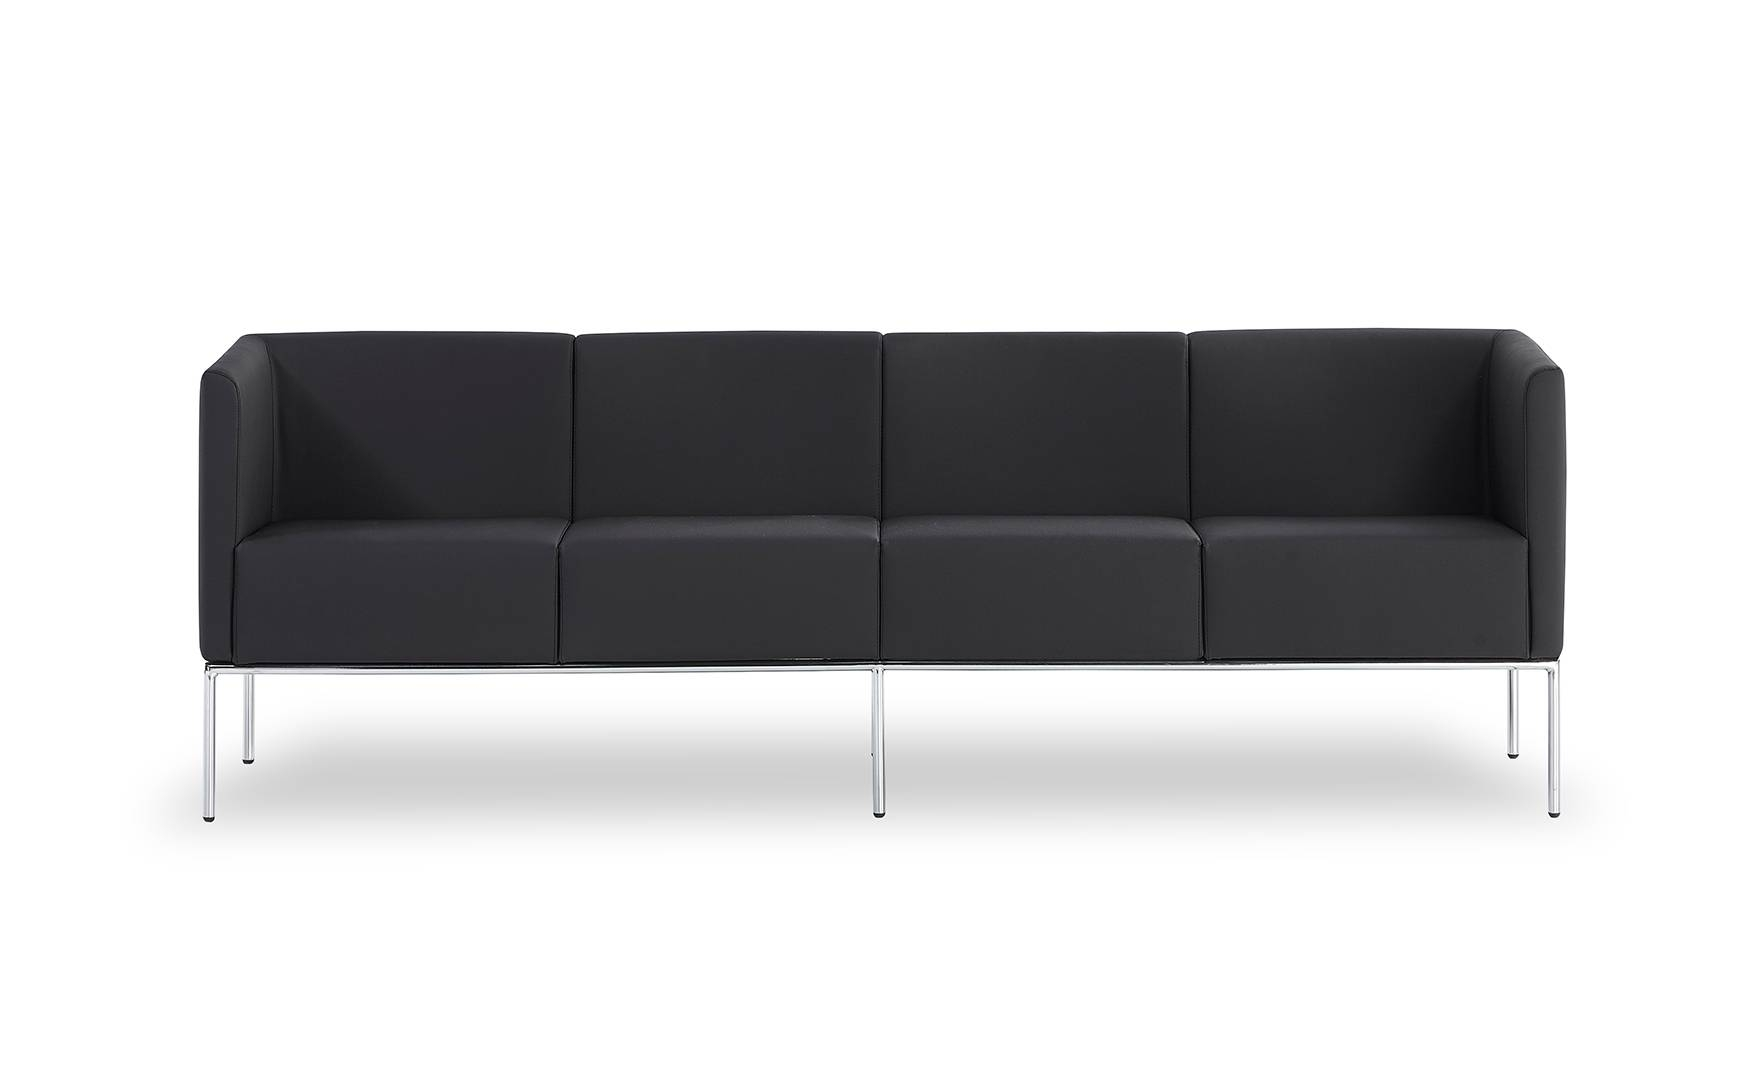 B&t Design | Products | Sofas | Tiny with regard to Tiny Sofas (Image 4 of 30)